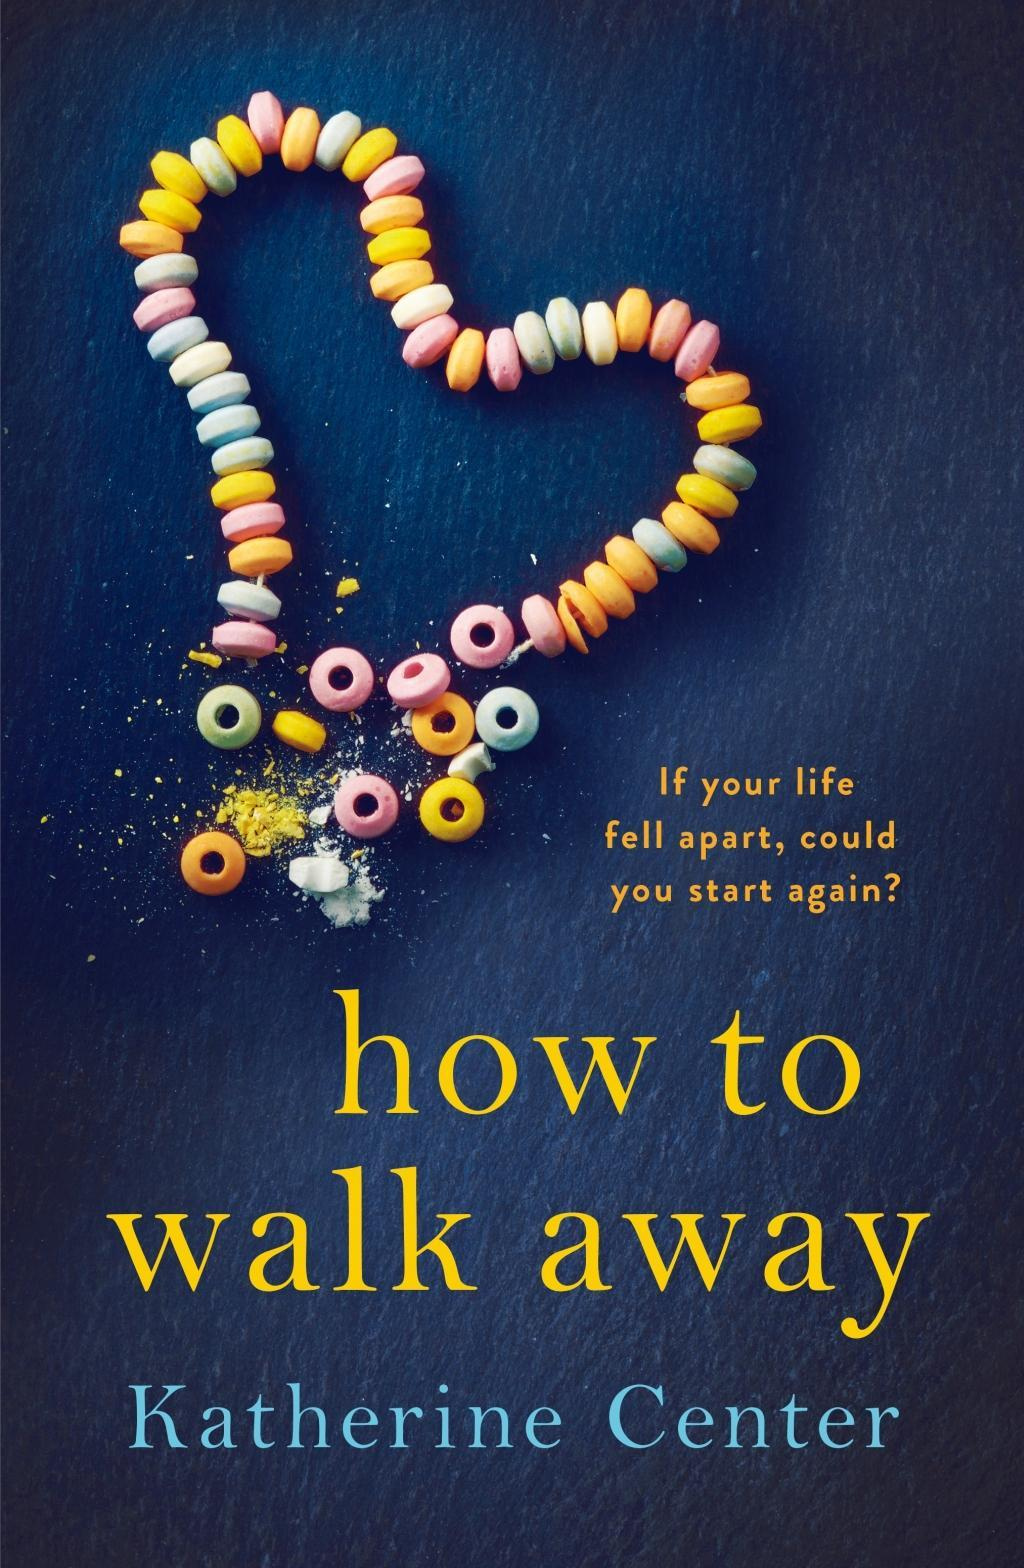 How to Walk Away by Katherine Center, ISBN: 9781509858941